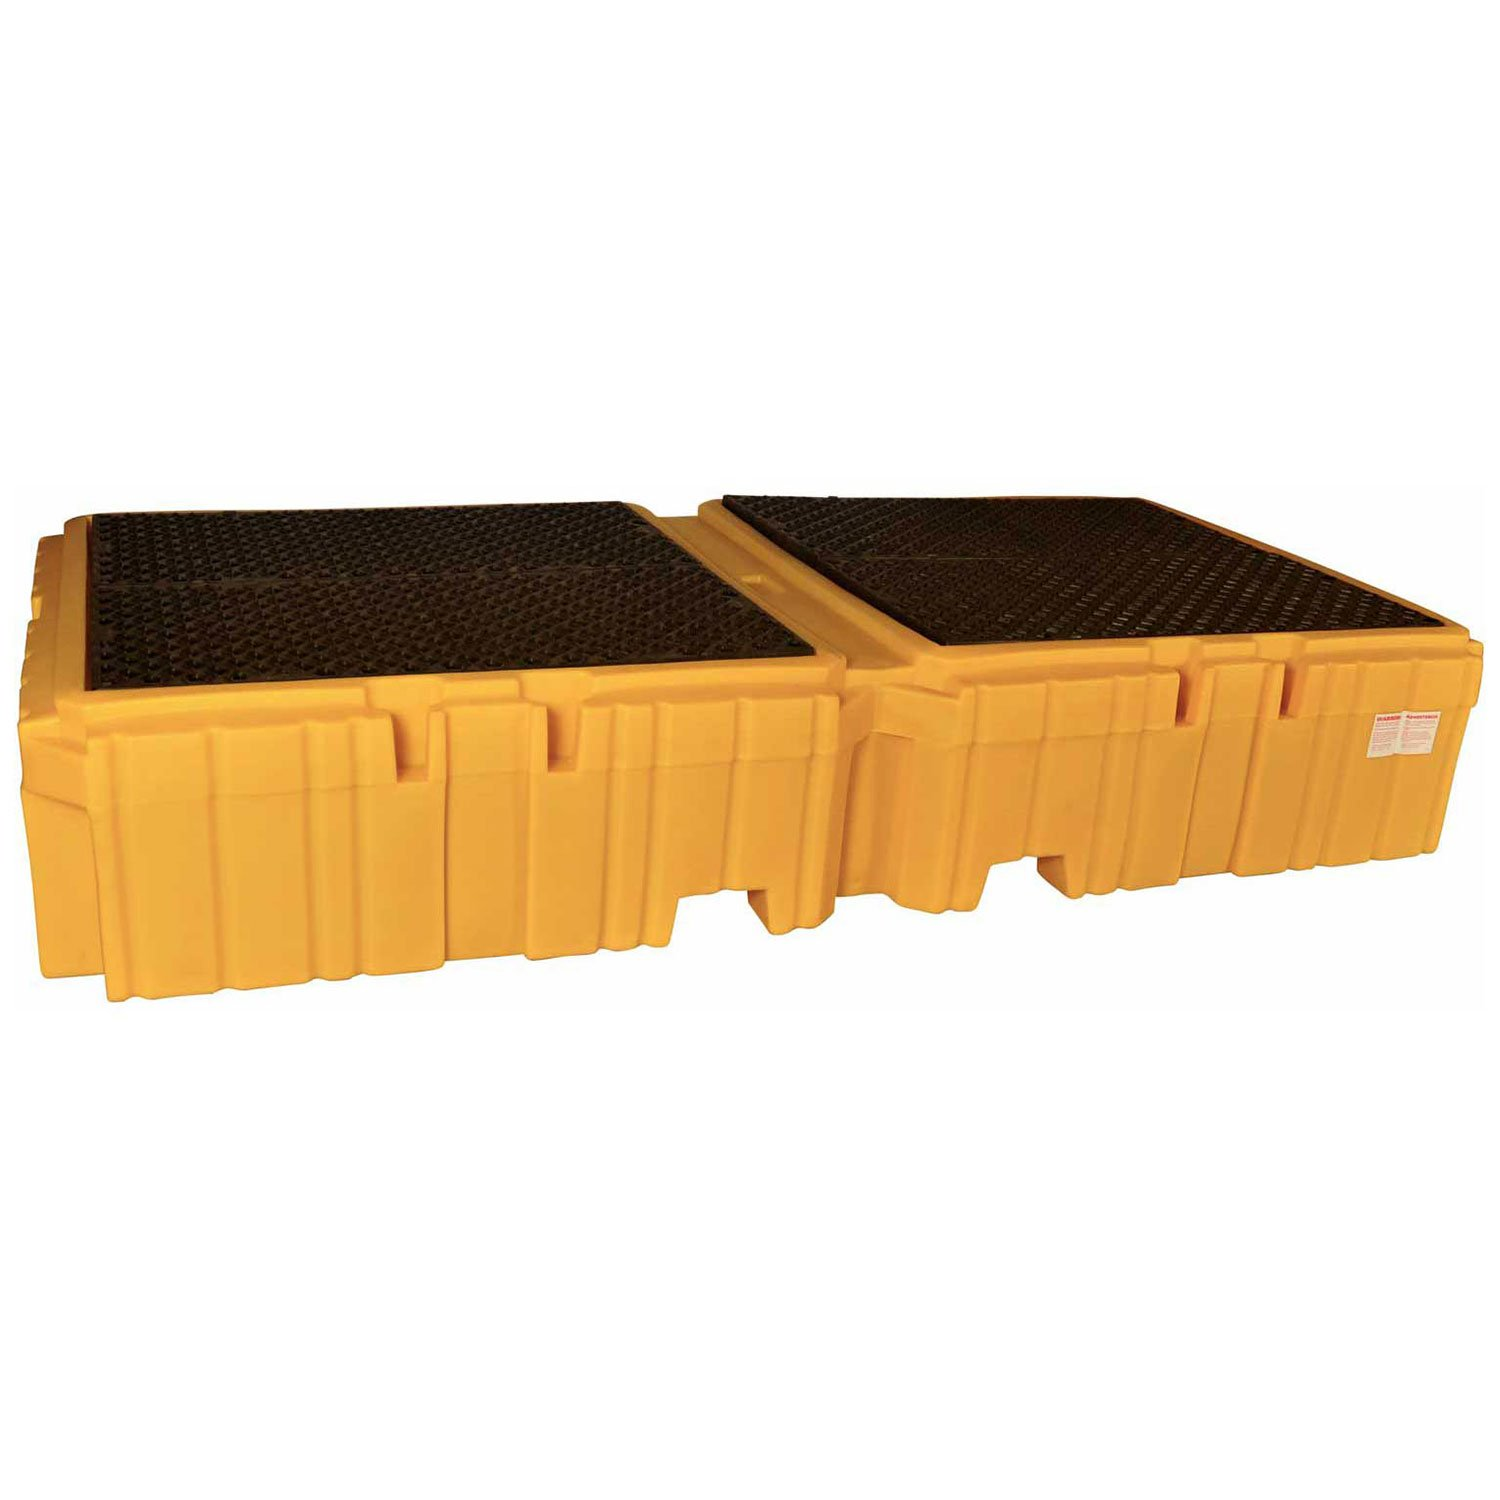 UltraTech 1144 Polyethylene Ultra-Twin IBC Spill Max 79% OFF New item Dra with Pallet